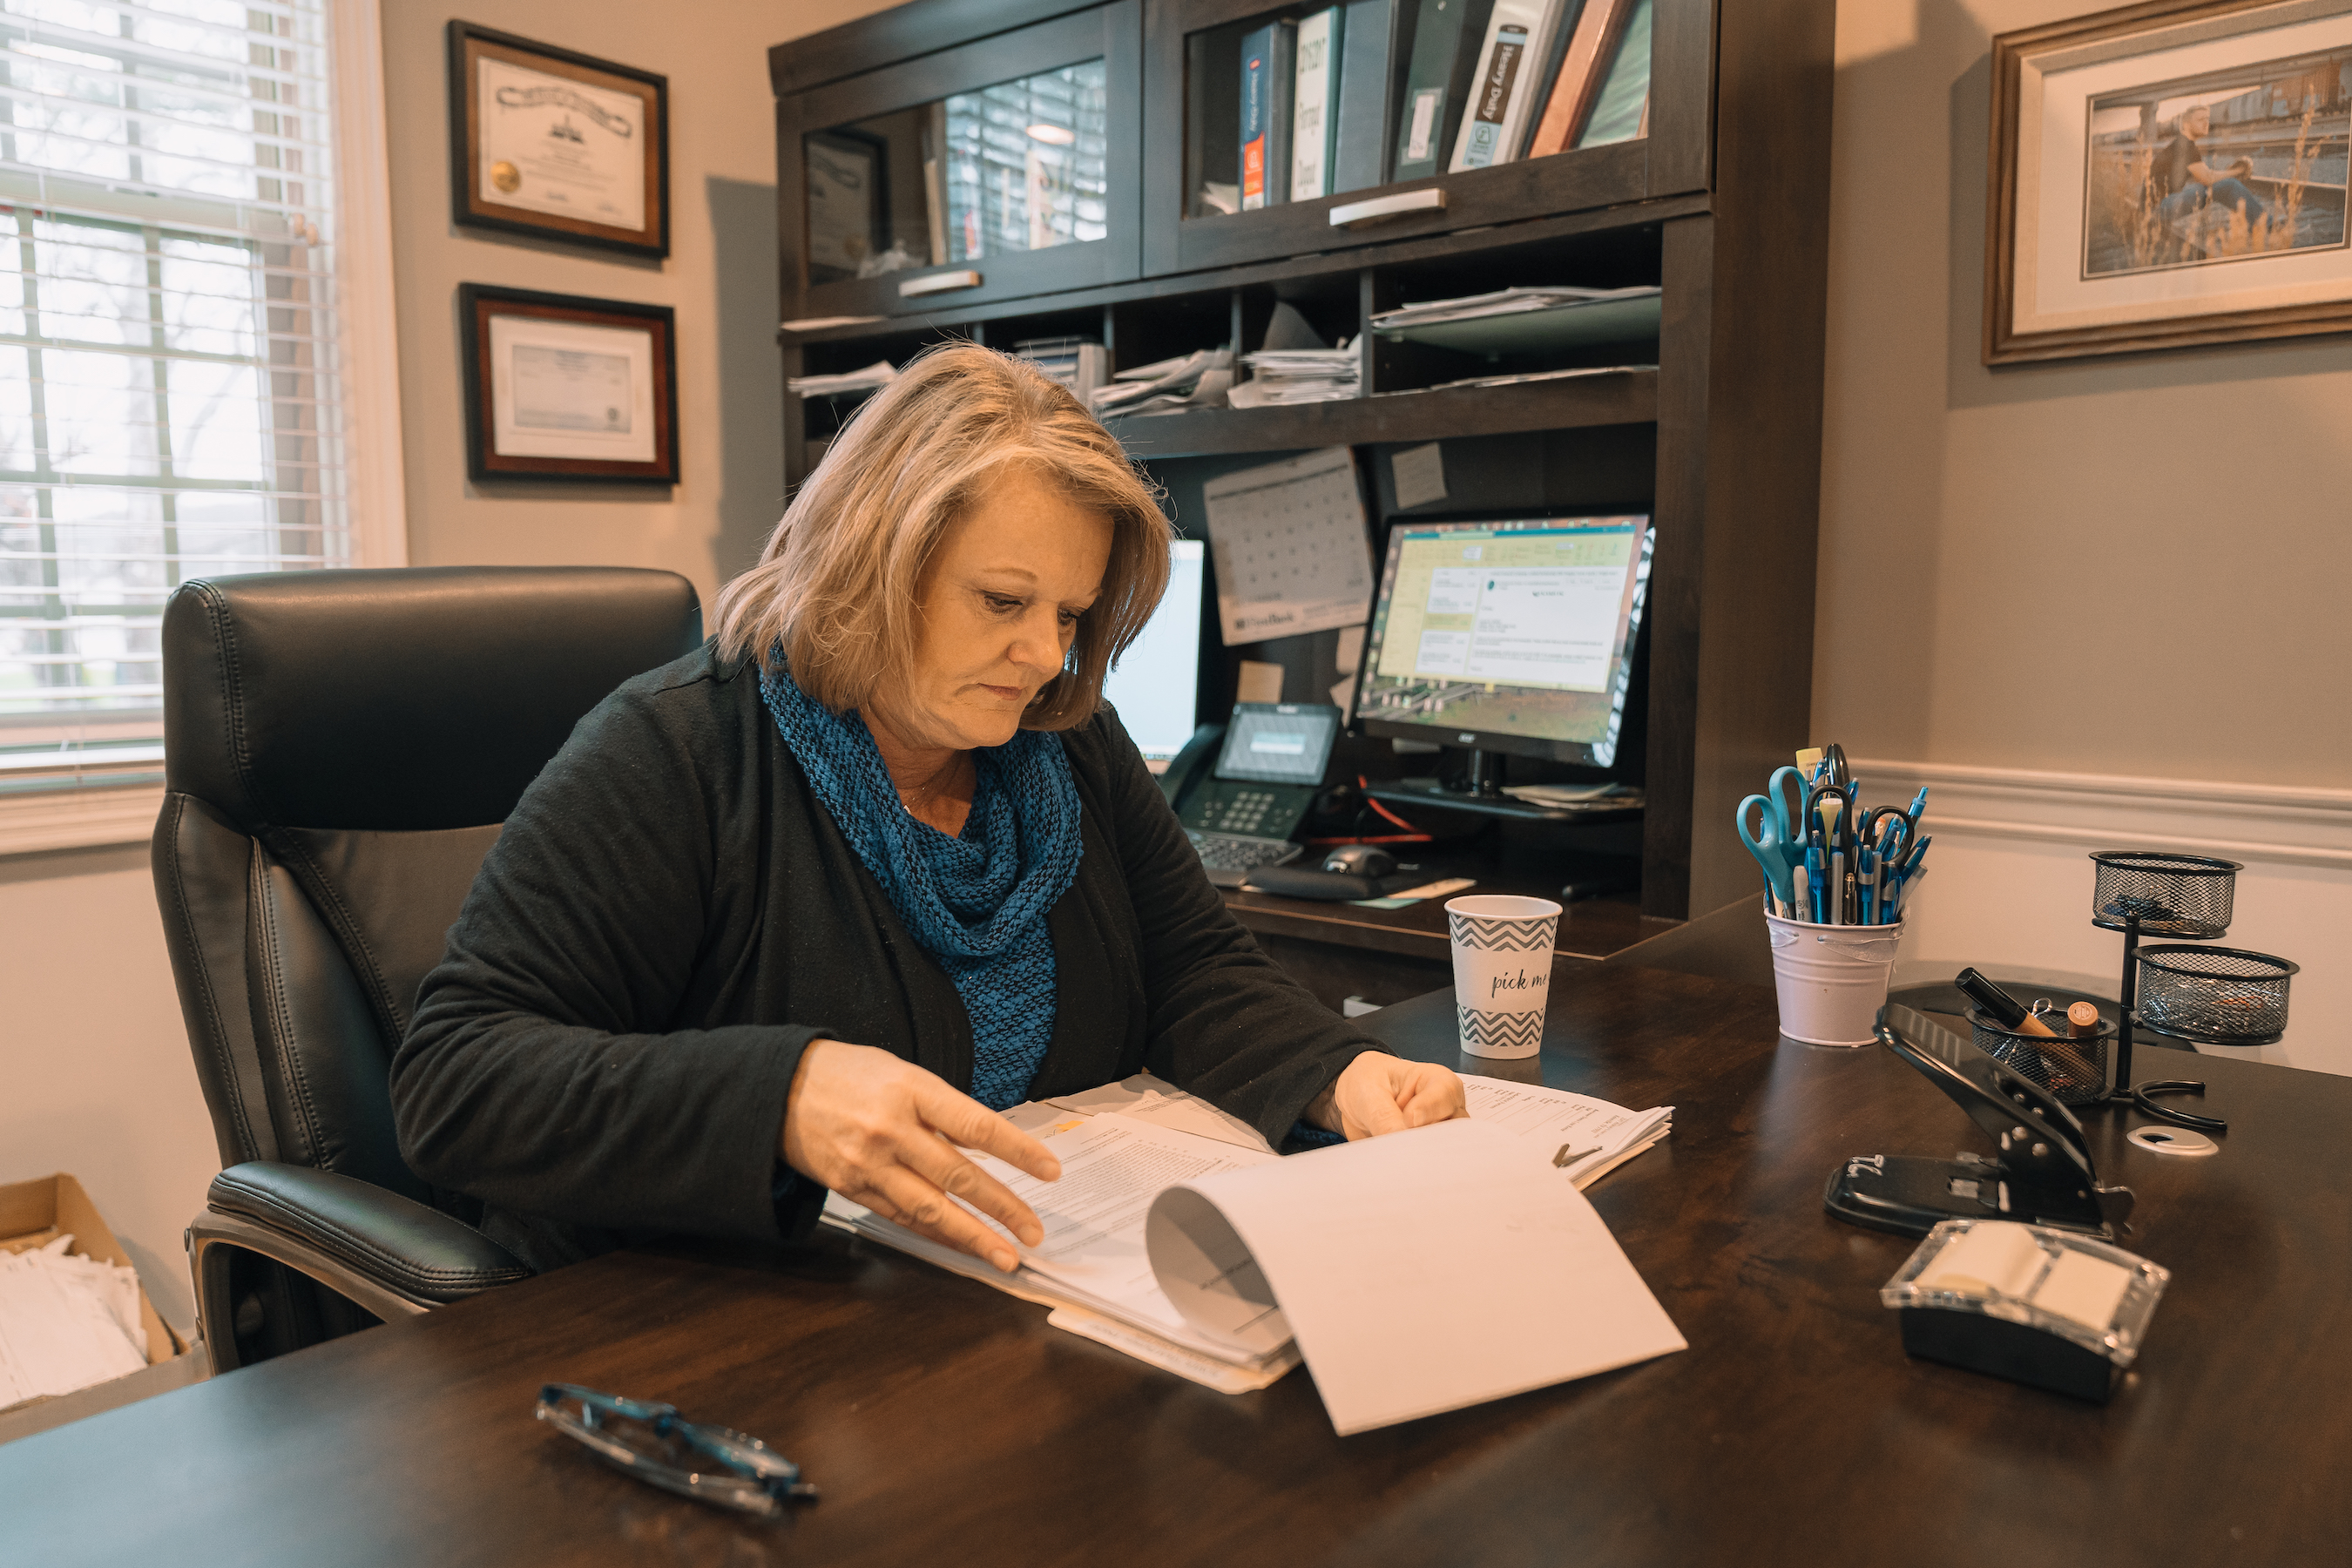 Teresa, Owner of Aspen Title and Escrow is working at her desk inside her office located in East Tennessee in the Knoxville area